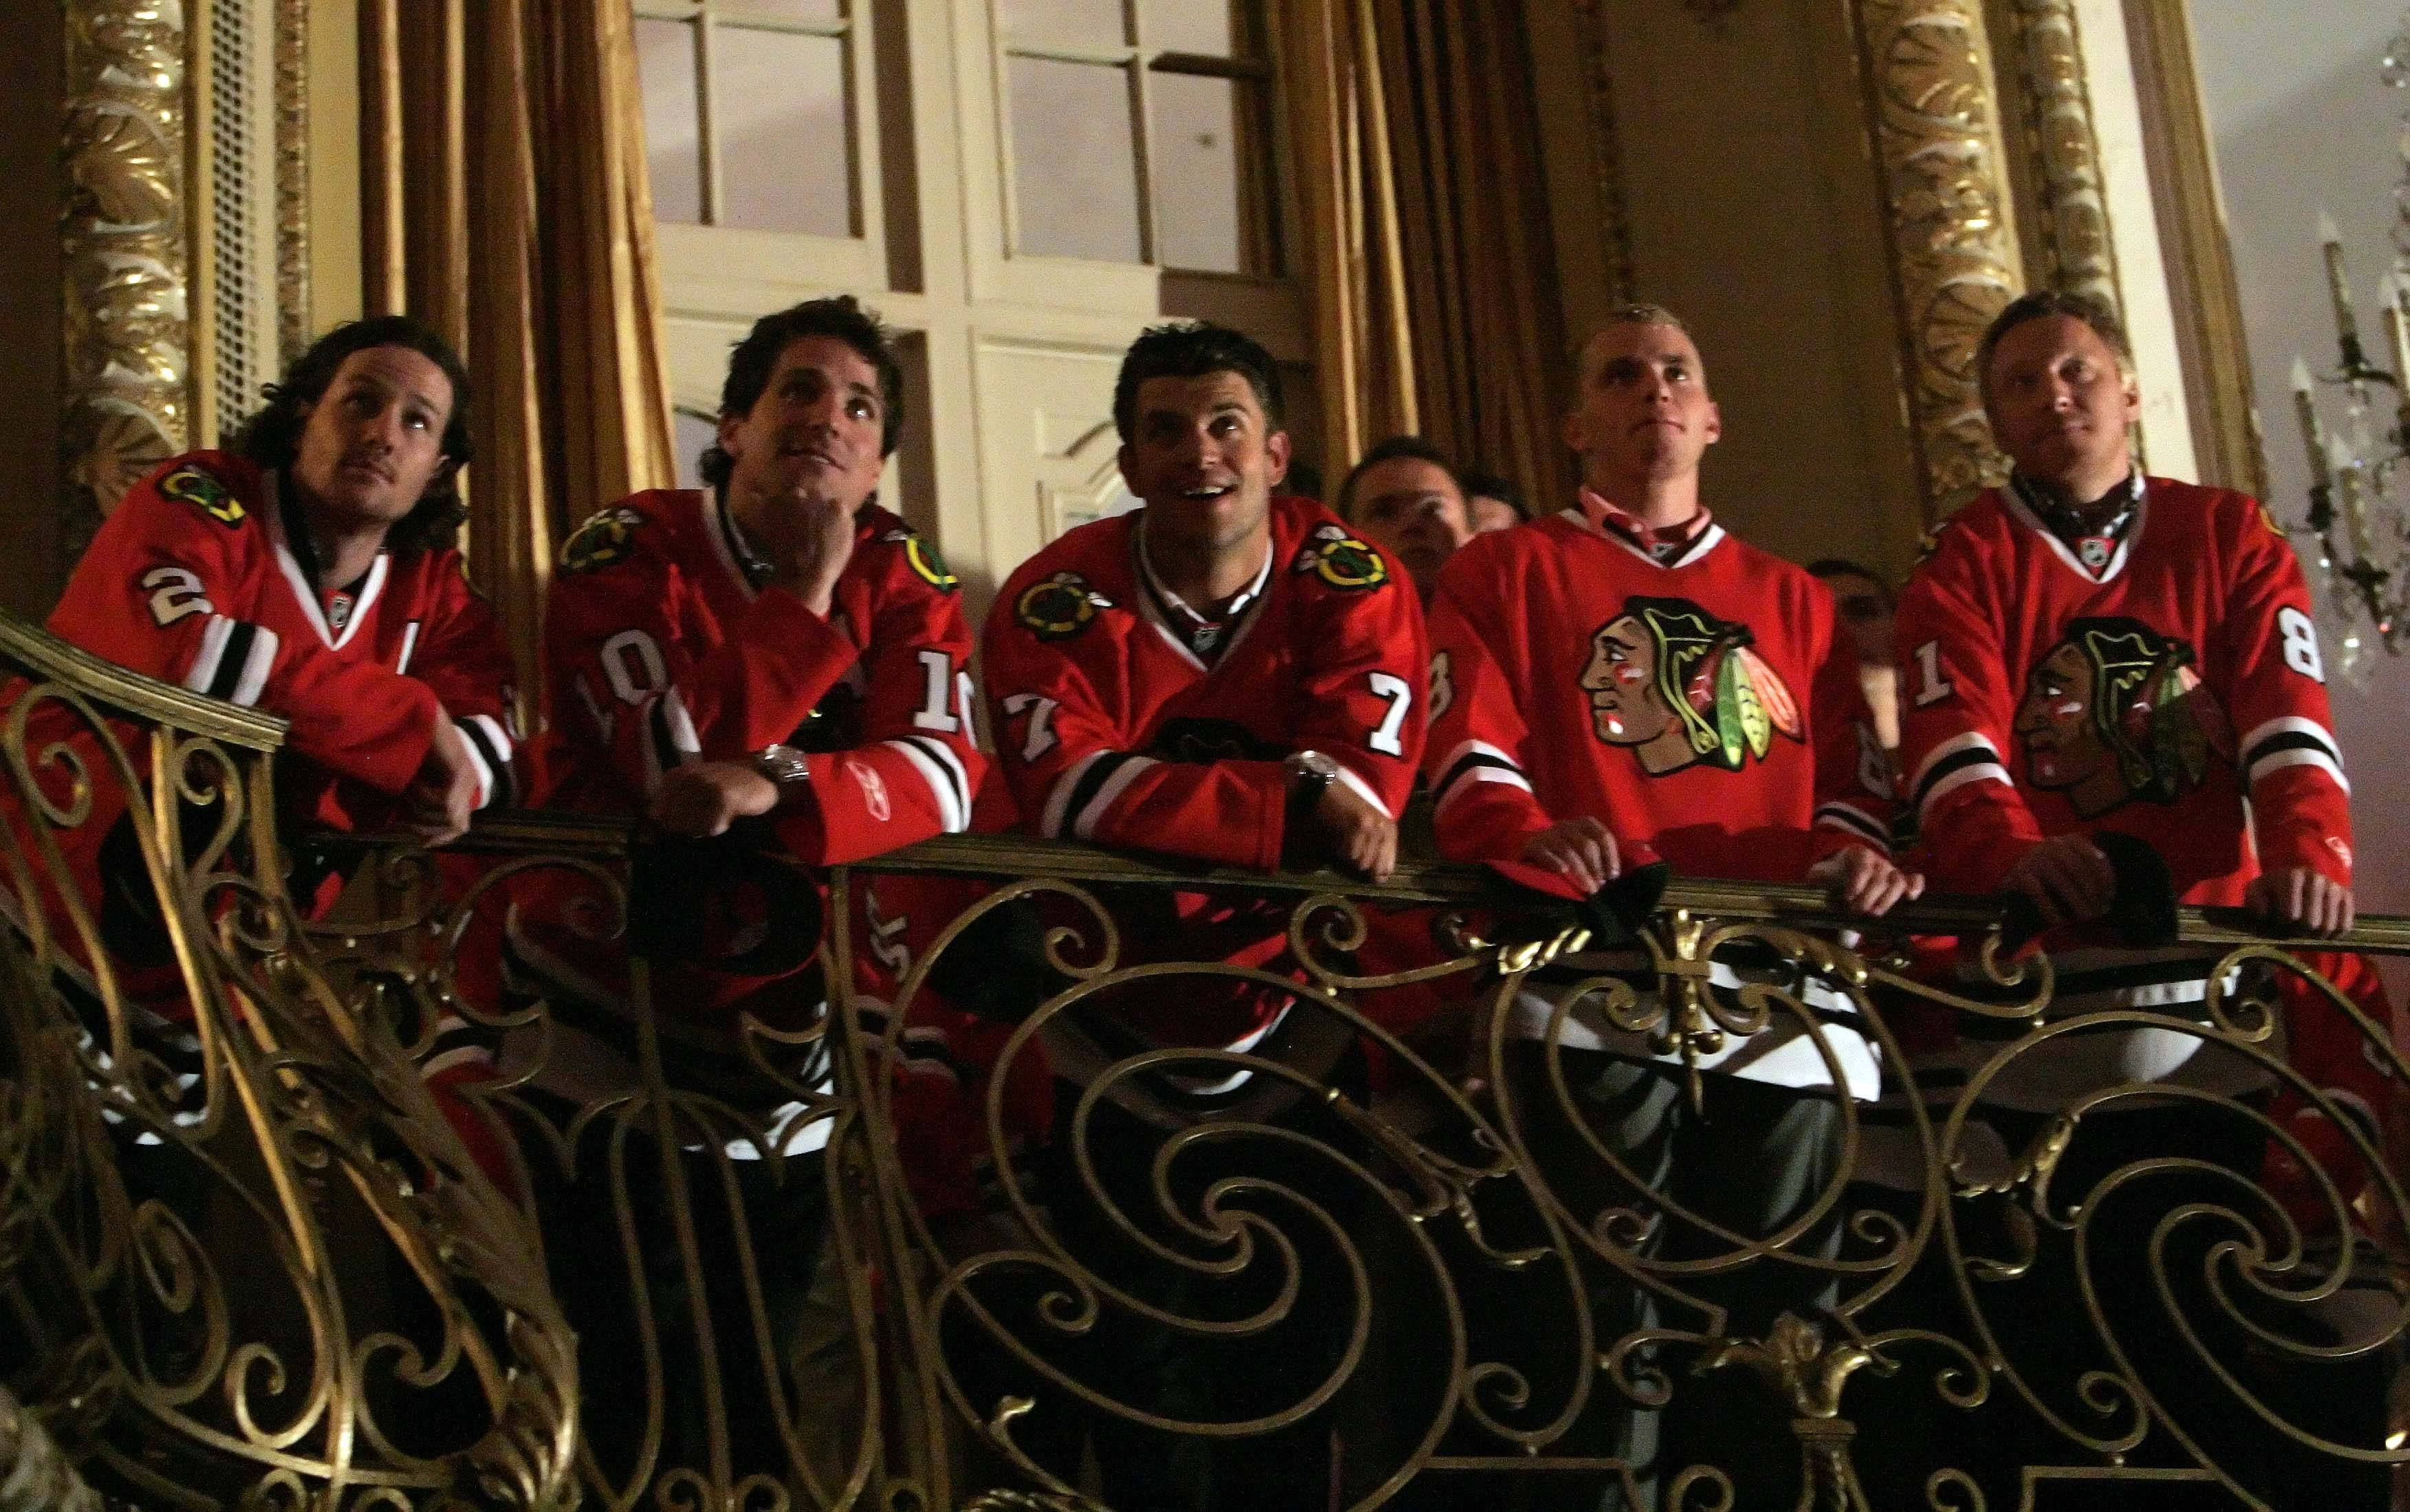 Duncan Keith, from left, Patrick Sharp, Brent Seabrook, Patrick Kane and Marian Hossa watch a video commemorating the team during opening ceremonies of the Blackhawks convention.